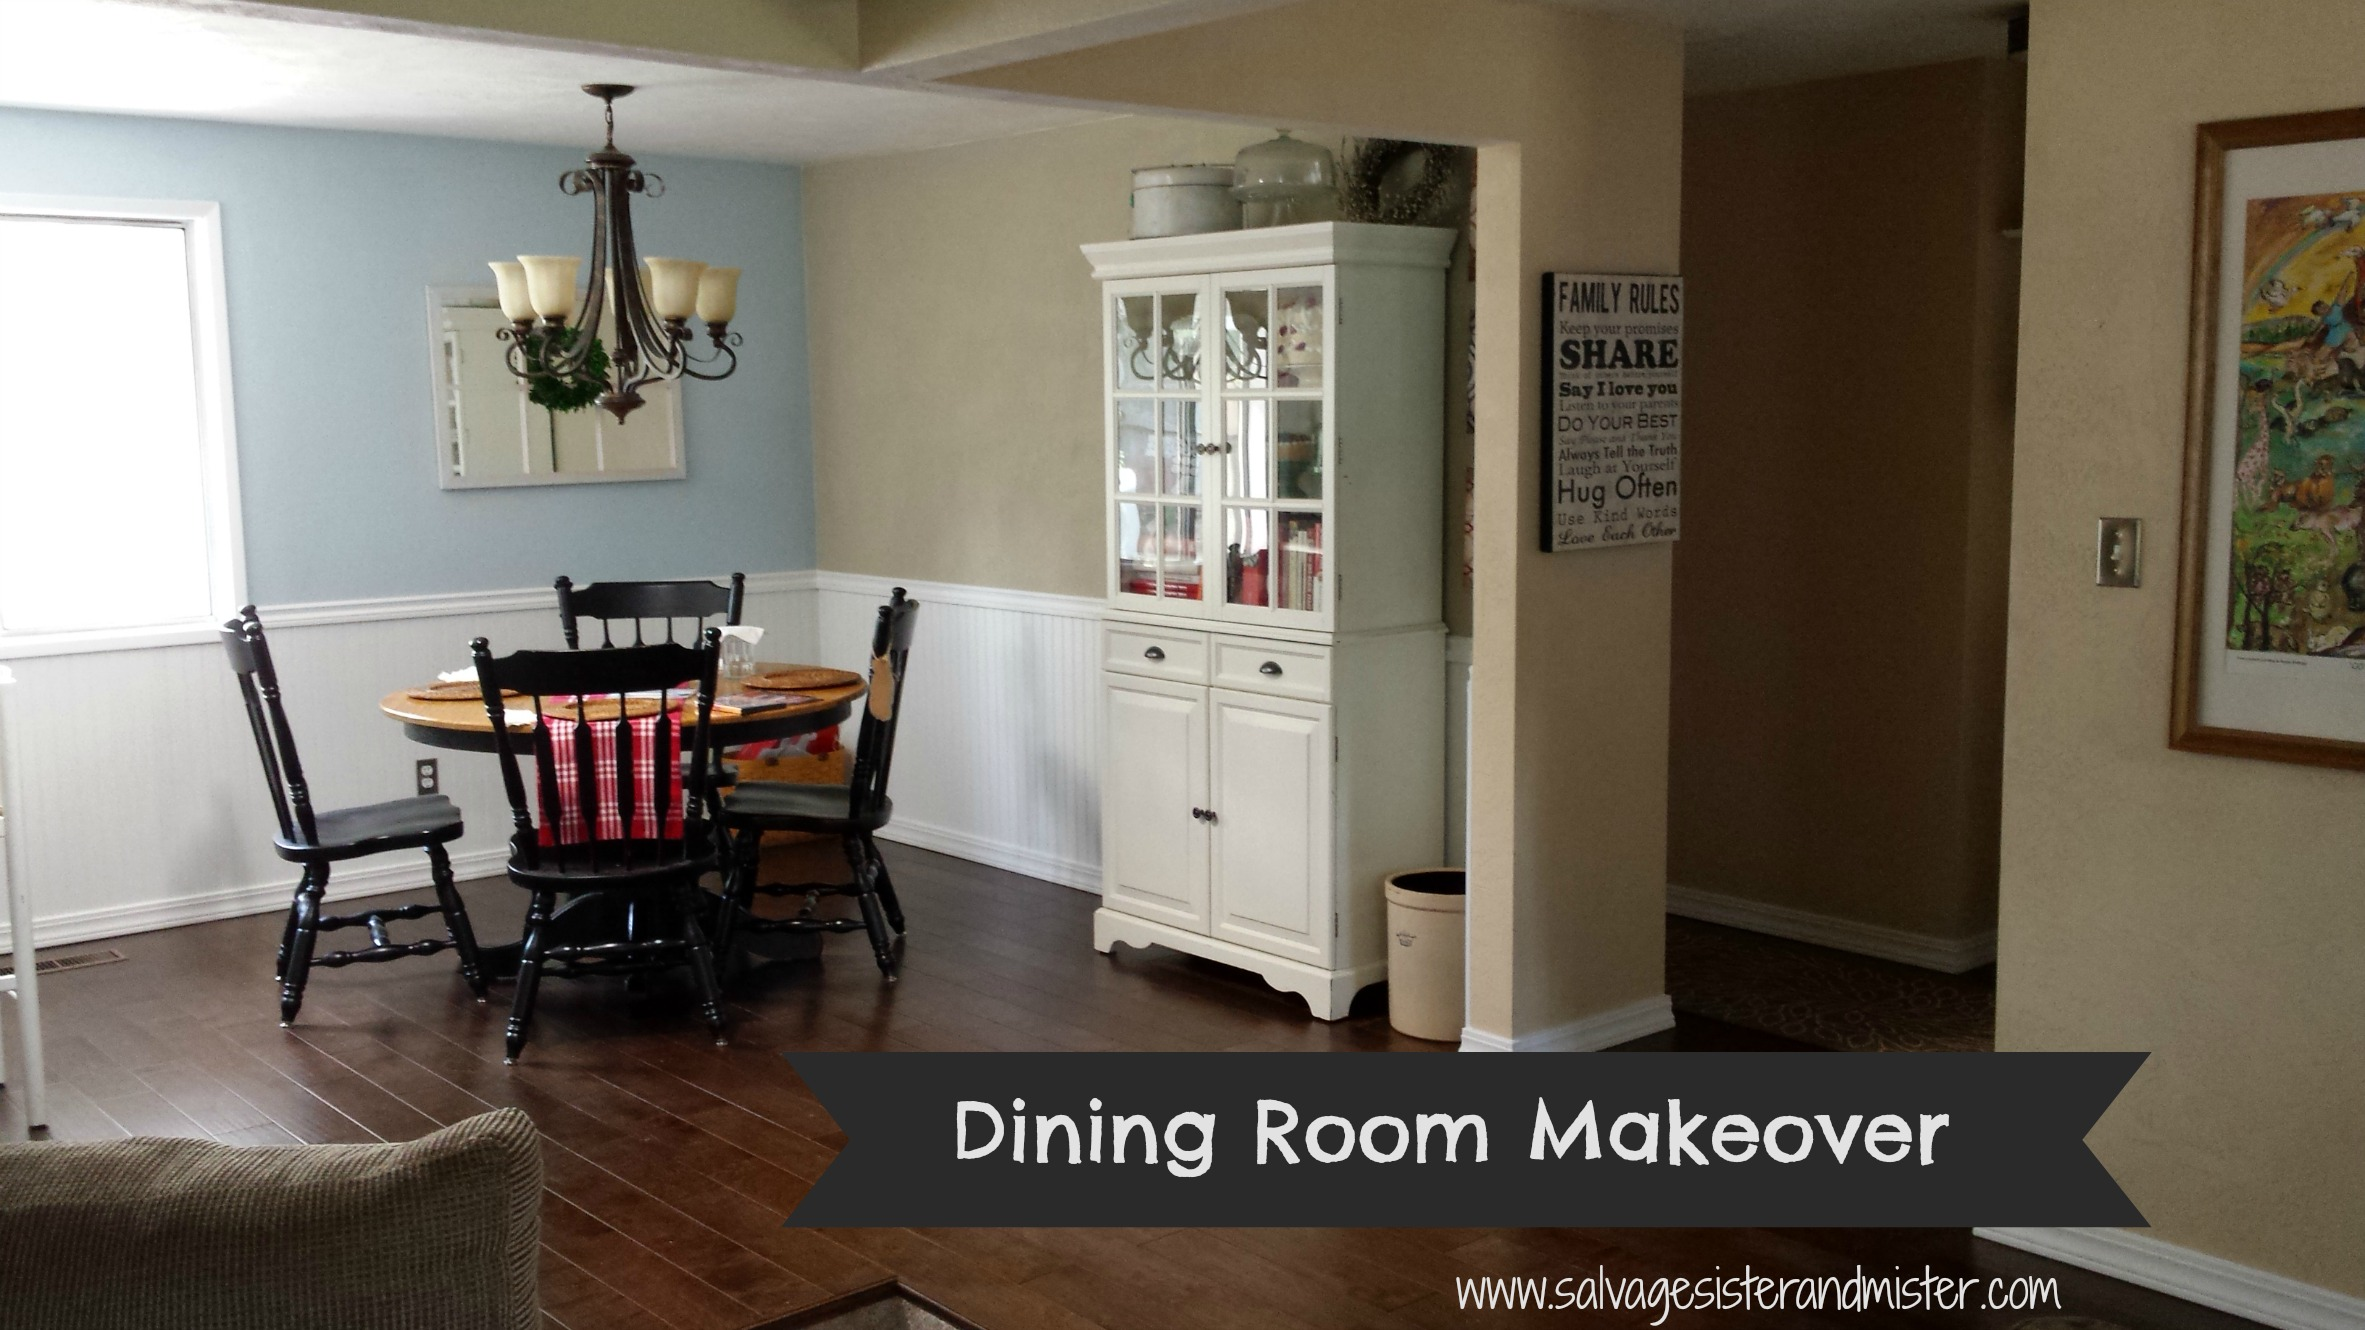 Dining room makeover on a budget salvage sister and mister for Room makeover